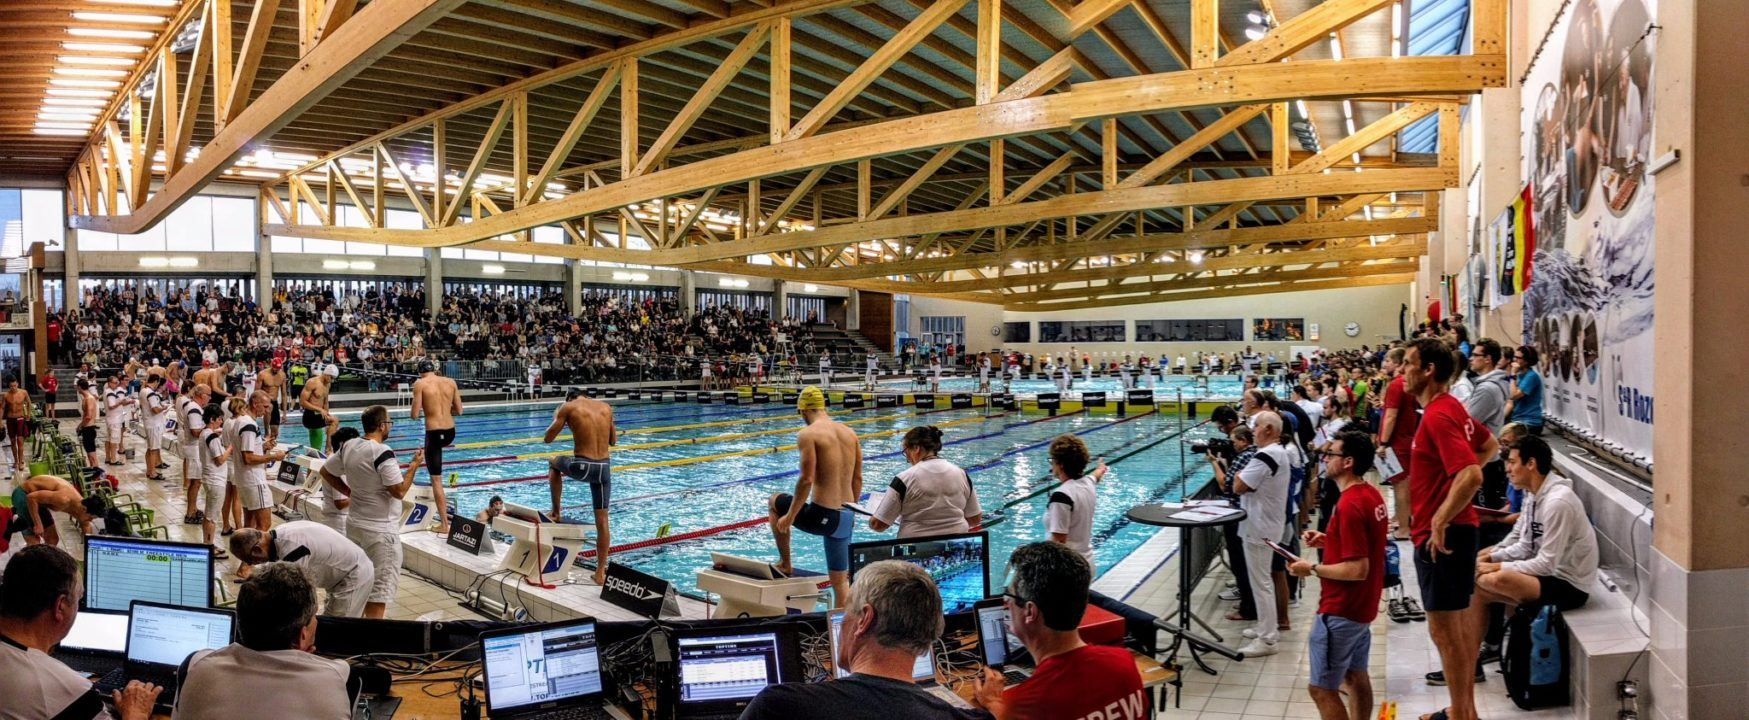 Dumont & Hendrickx Take Down Belgian Records To Close Out SC C'ships